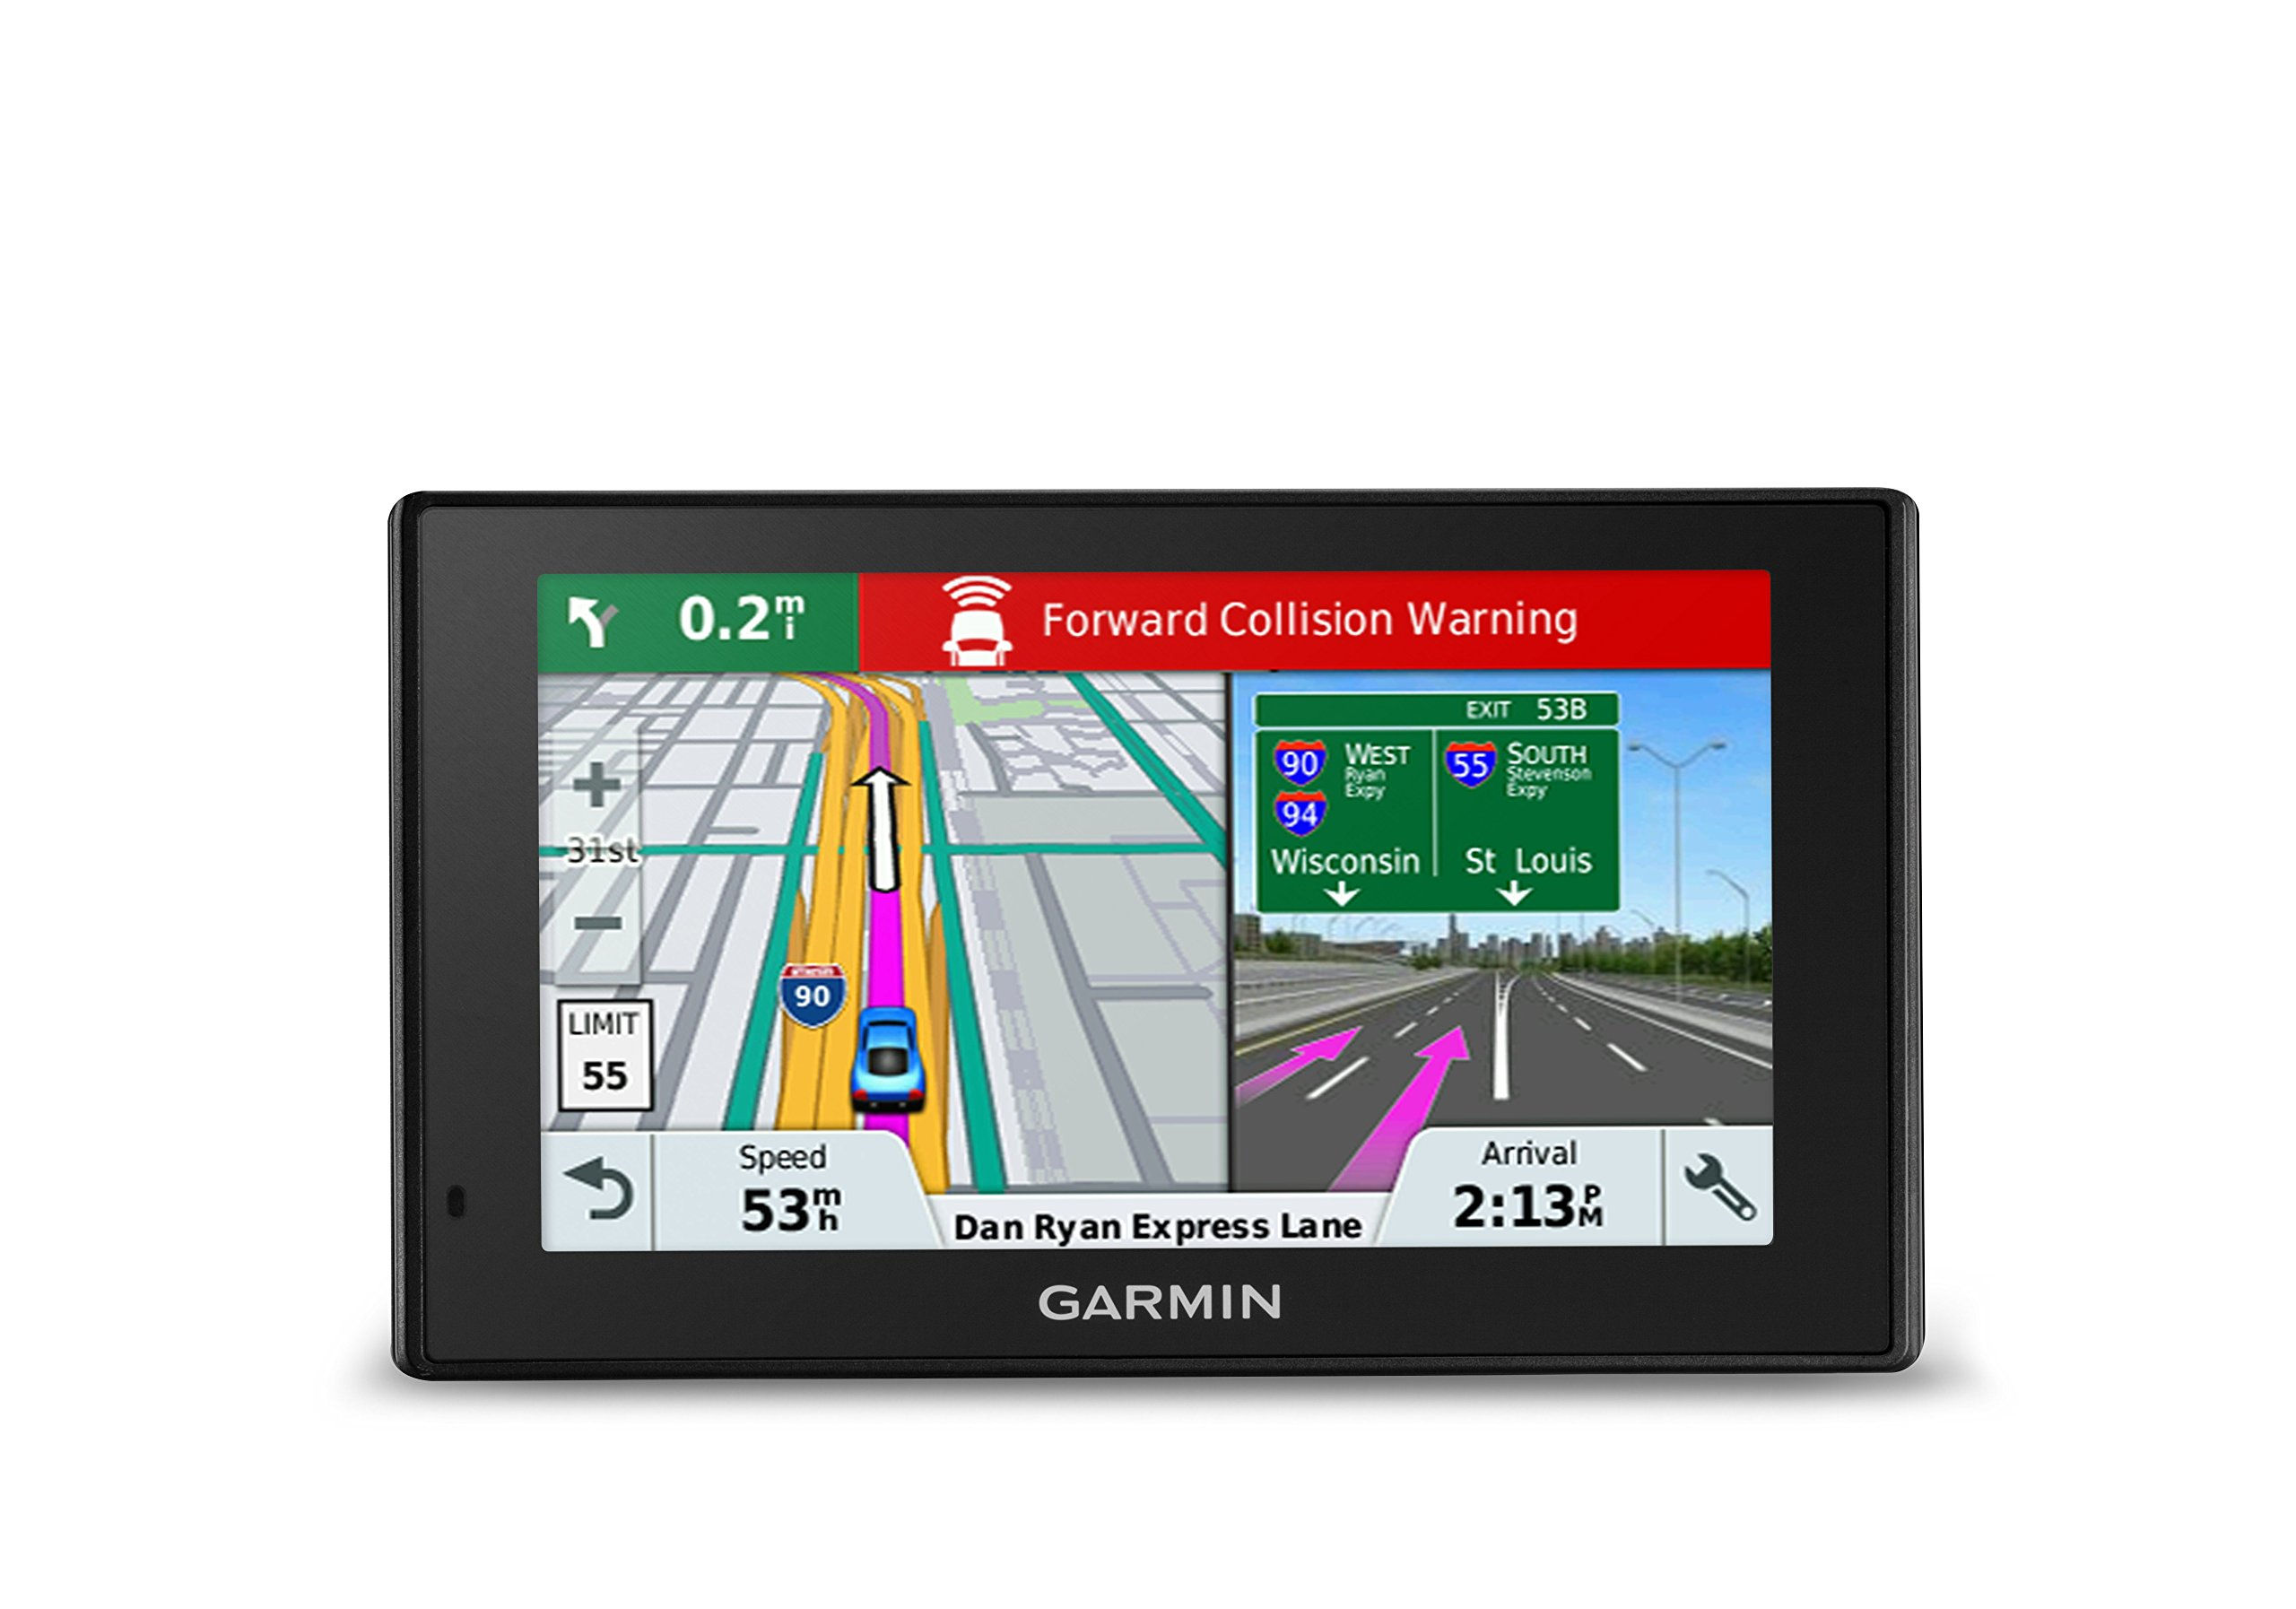 Garmin DriveAssist 51 NA LMT-S w/Lifetime Maps/Traffic, Dash Cam, Camera-assisted Alerts, Lifetime Maps/Traffic,Live Parking, Smart Notifications, Voice Activation by Garmin